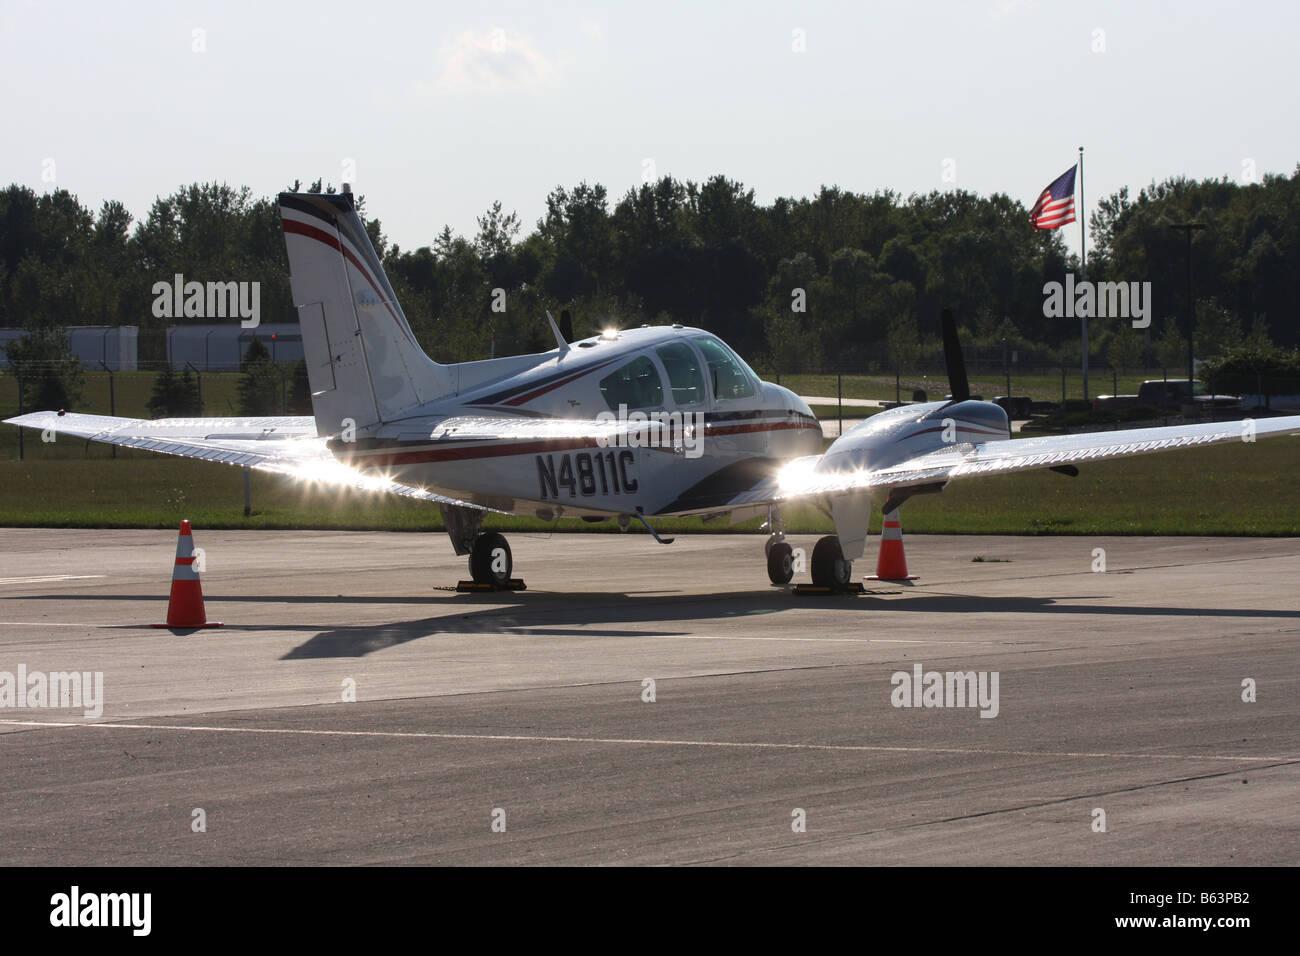 A twin engine Baron parked at Crites Airfield in Waukesha Wisconsin - Stock Image